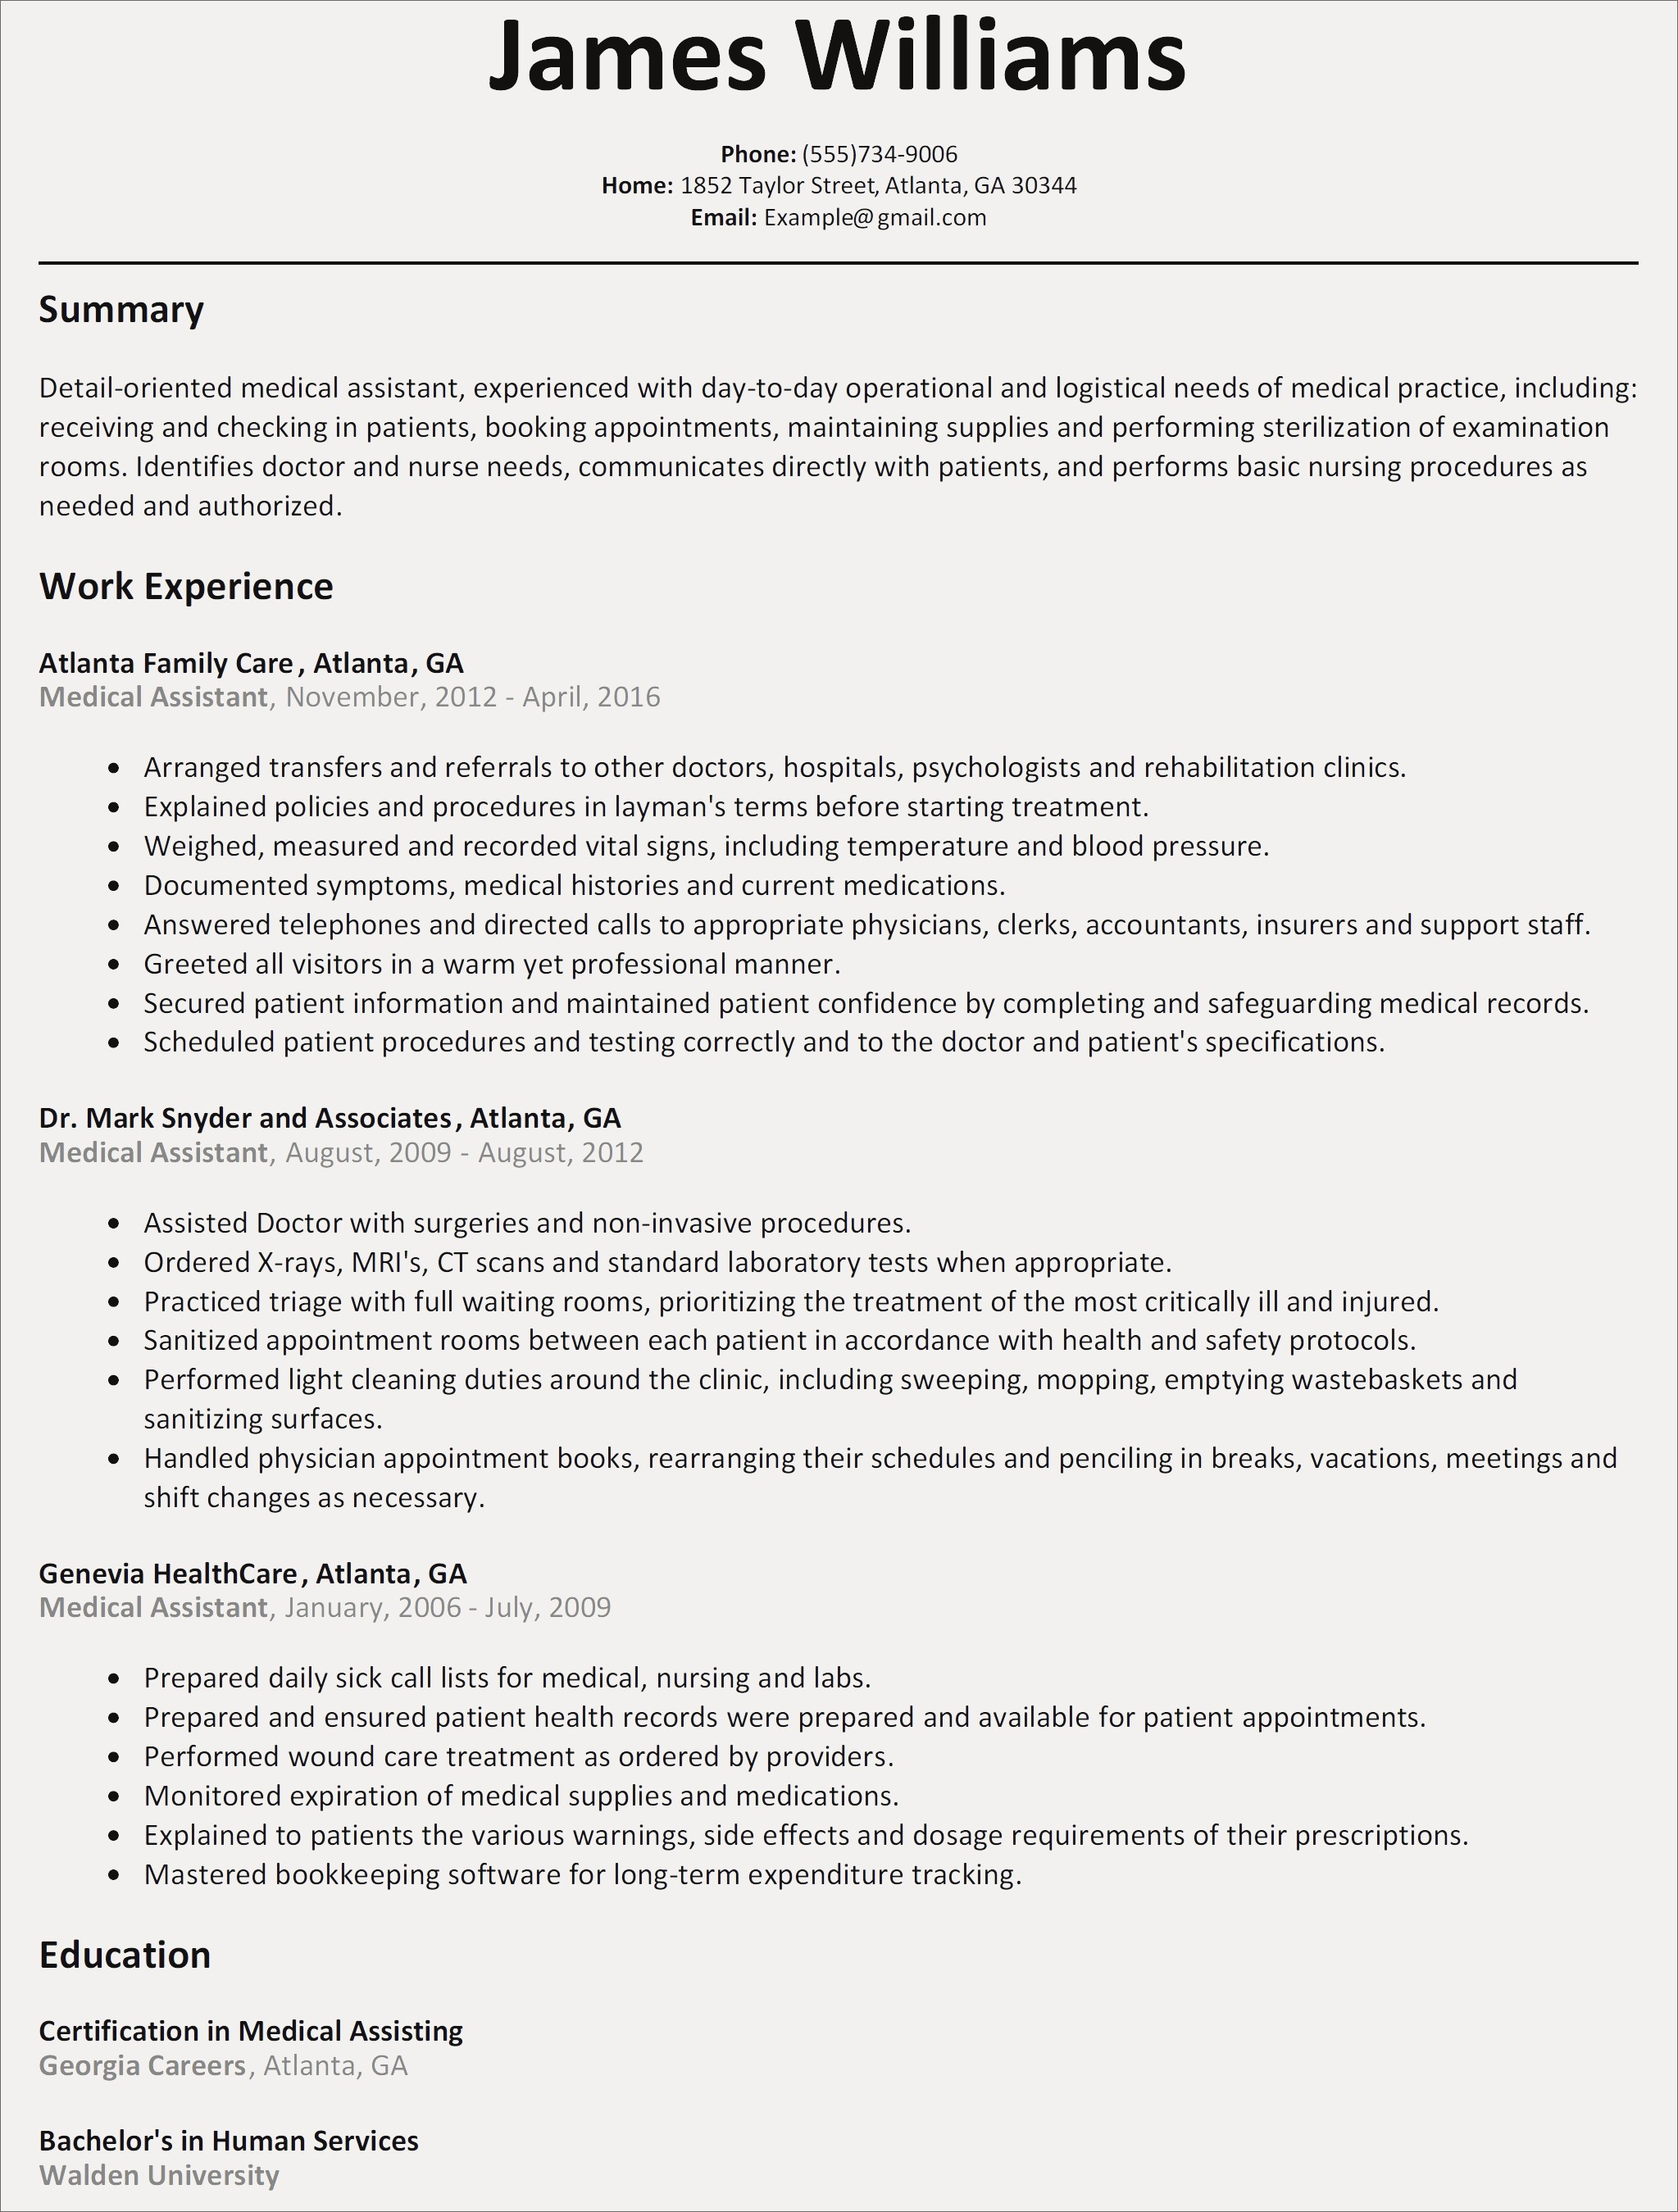 Sales Professional Resume Template - New Resume Templates for Customer Service